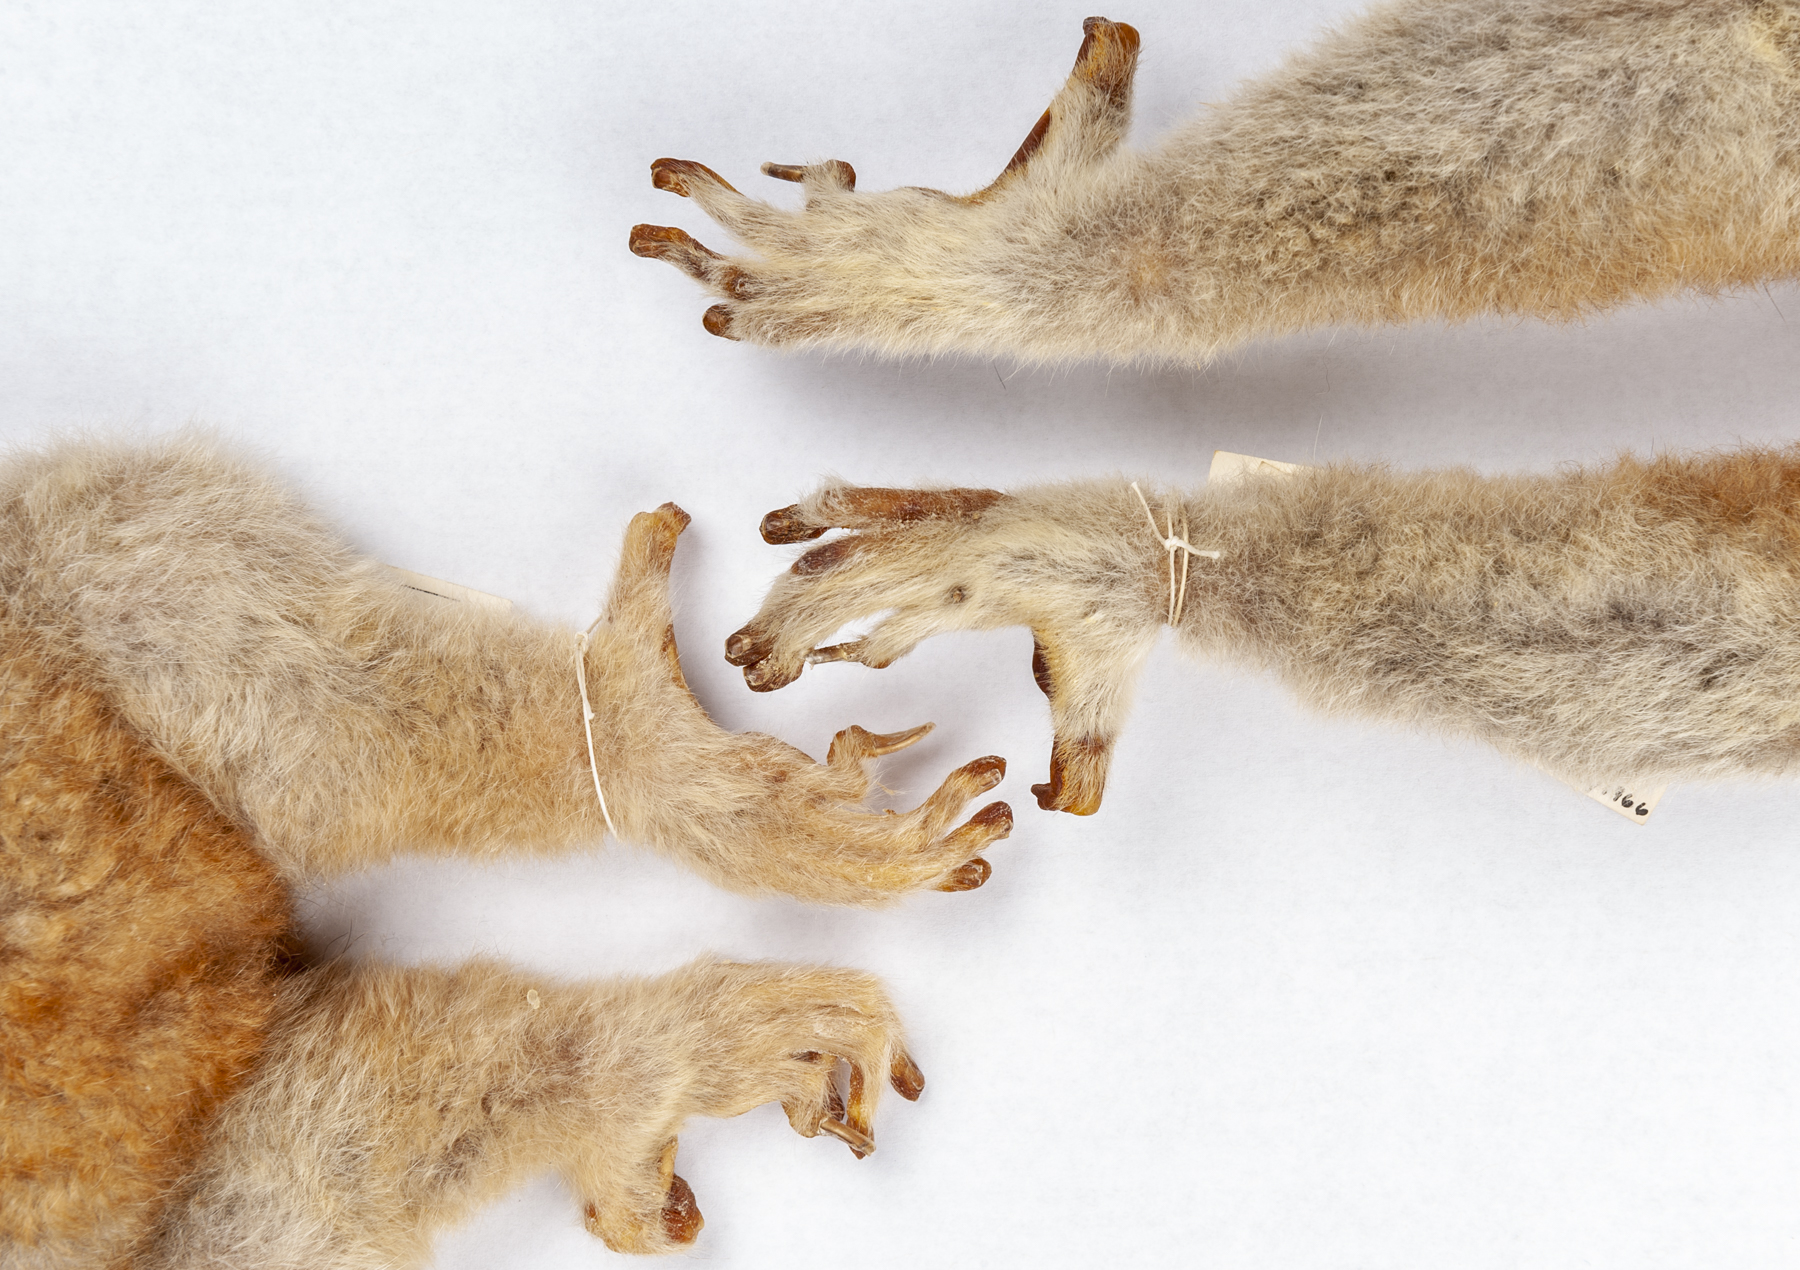 Fossils Show Ancient Primates Had Grooming Claws As Well As Nails Florida Museum Science